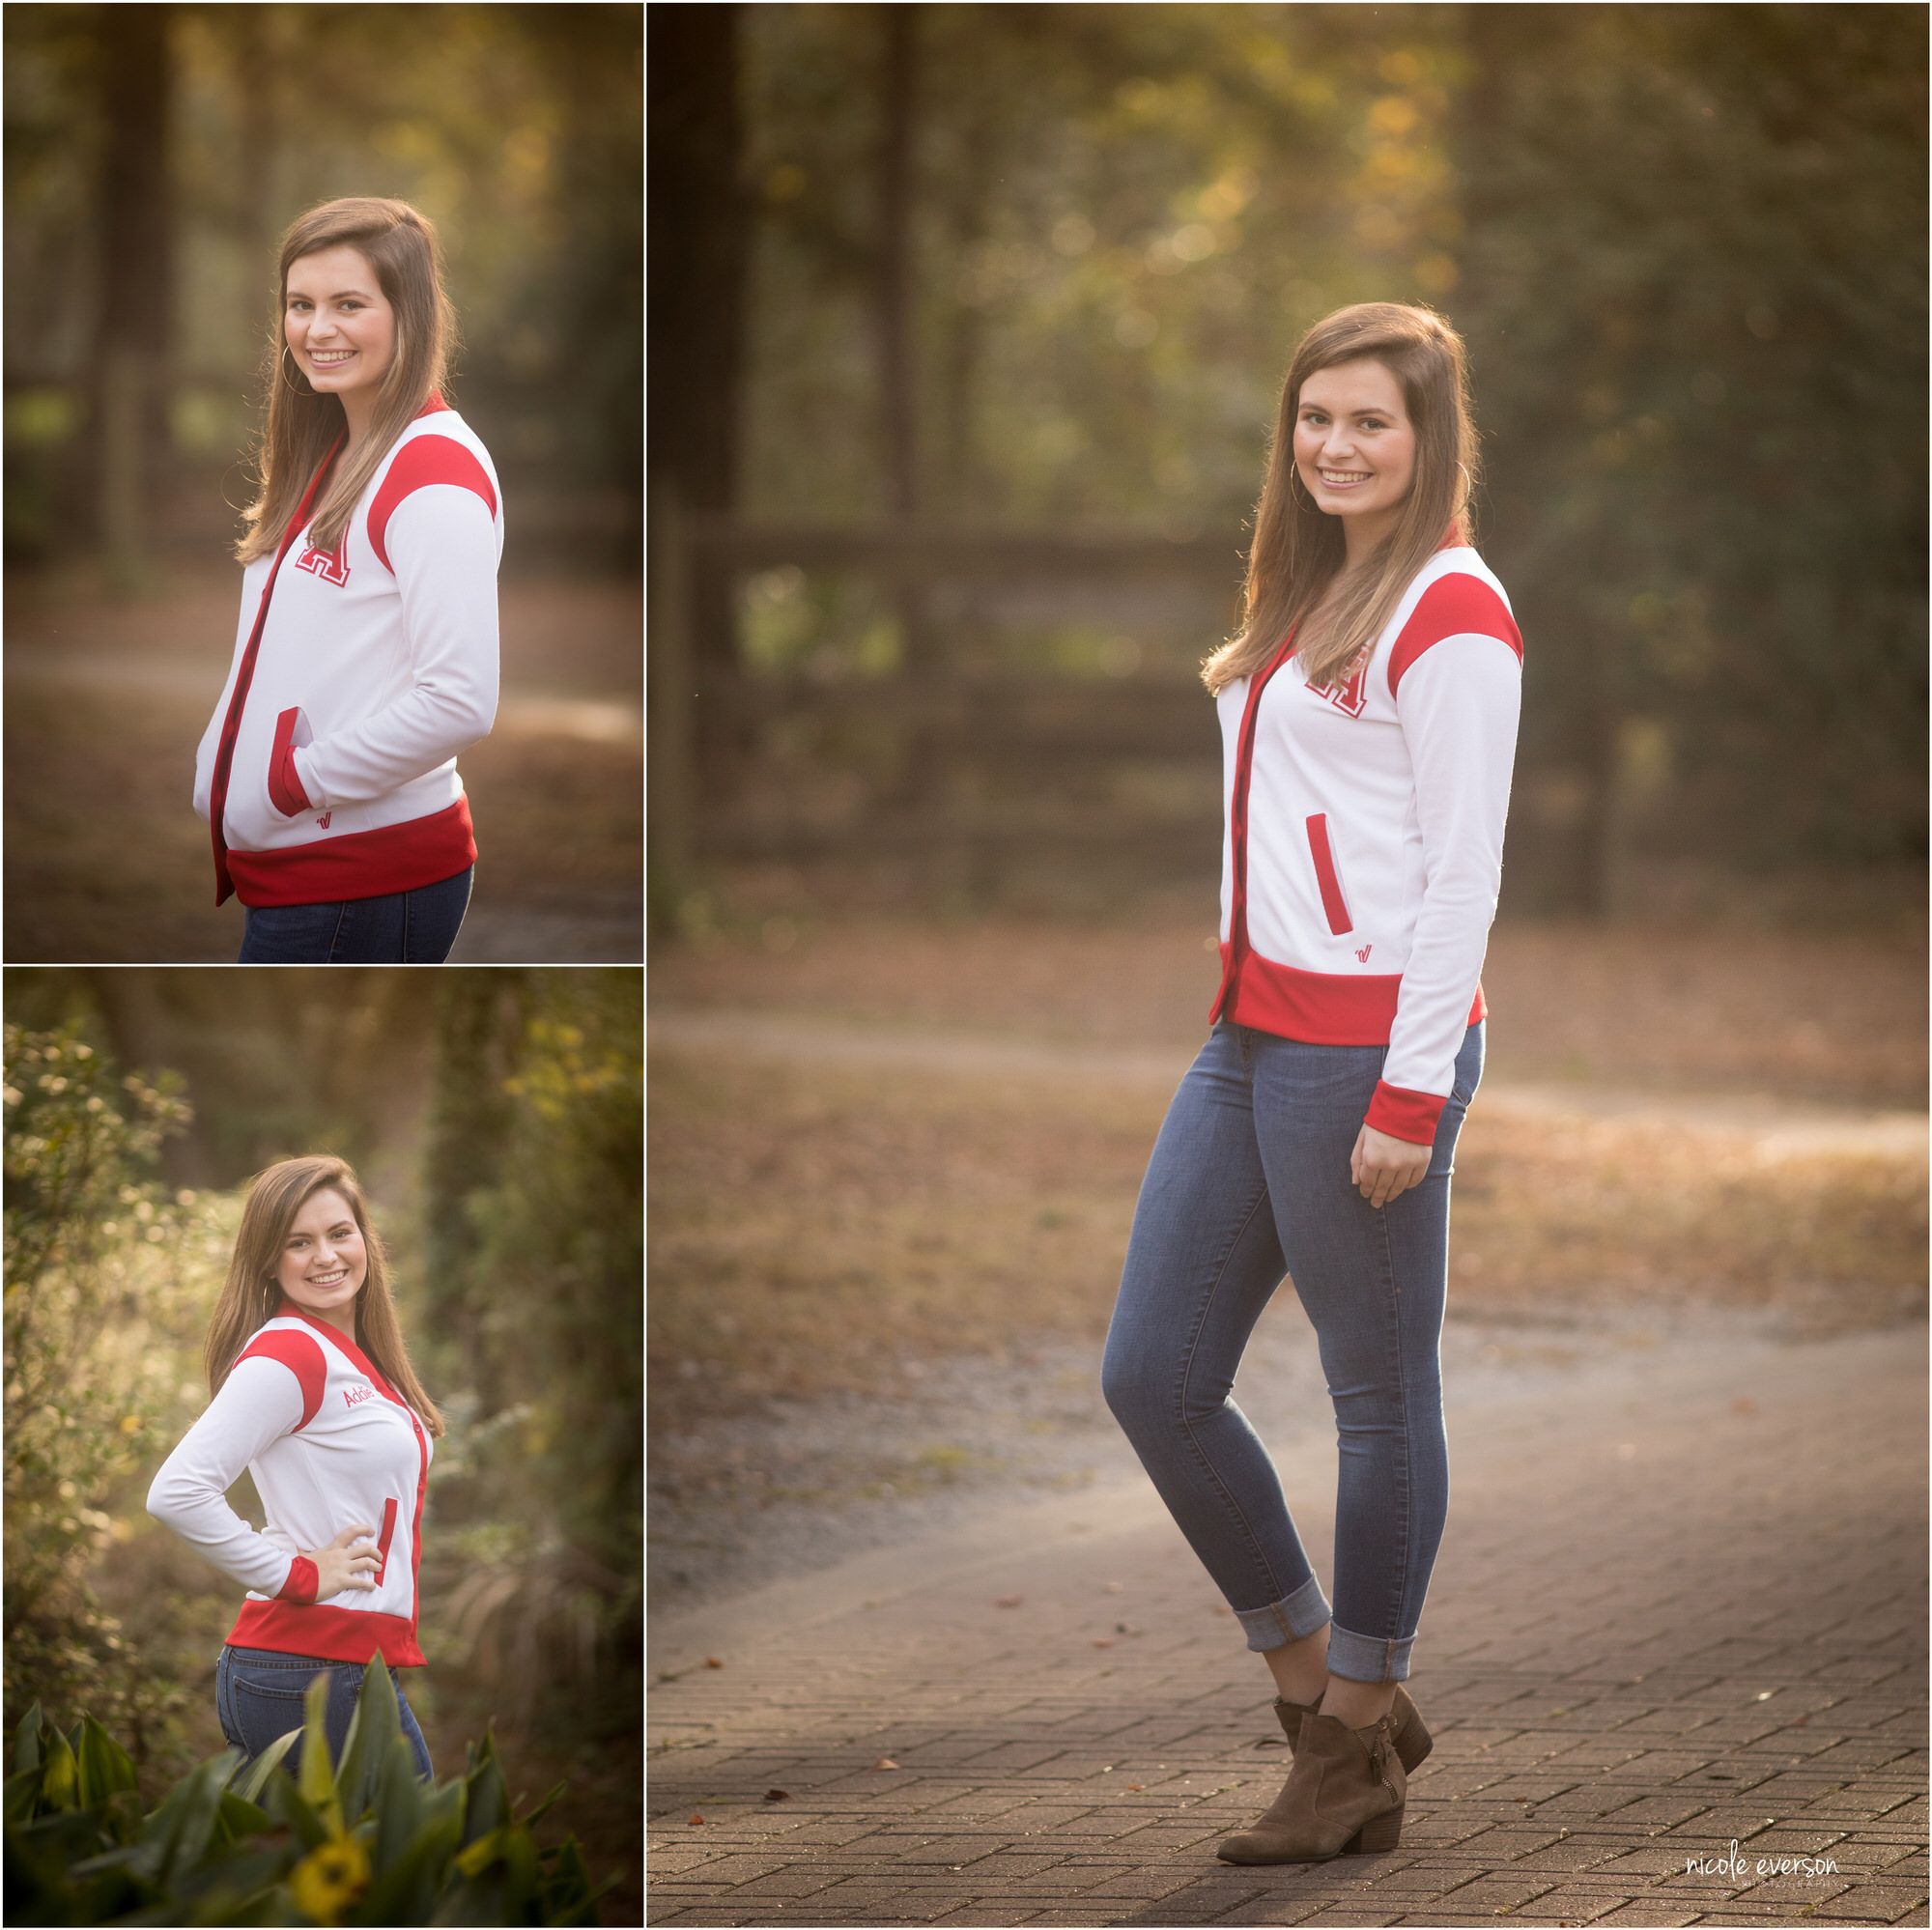 senior pictures by Nicole Everson Photography